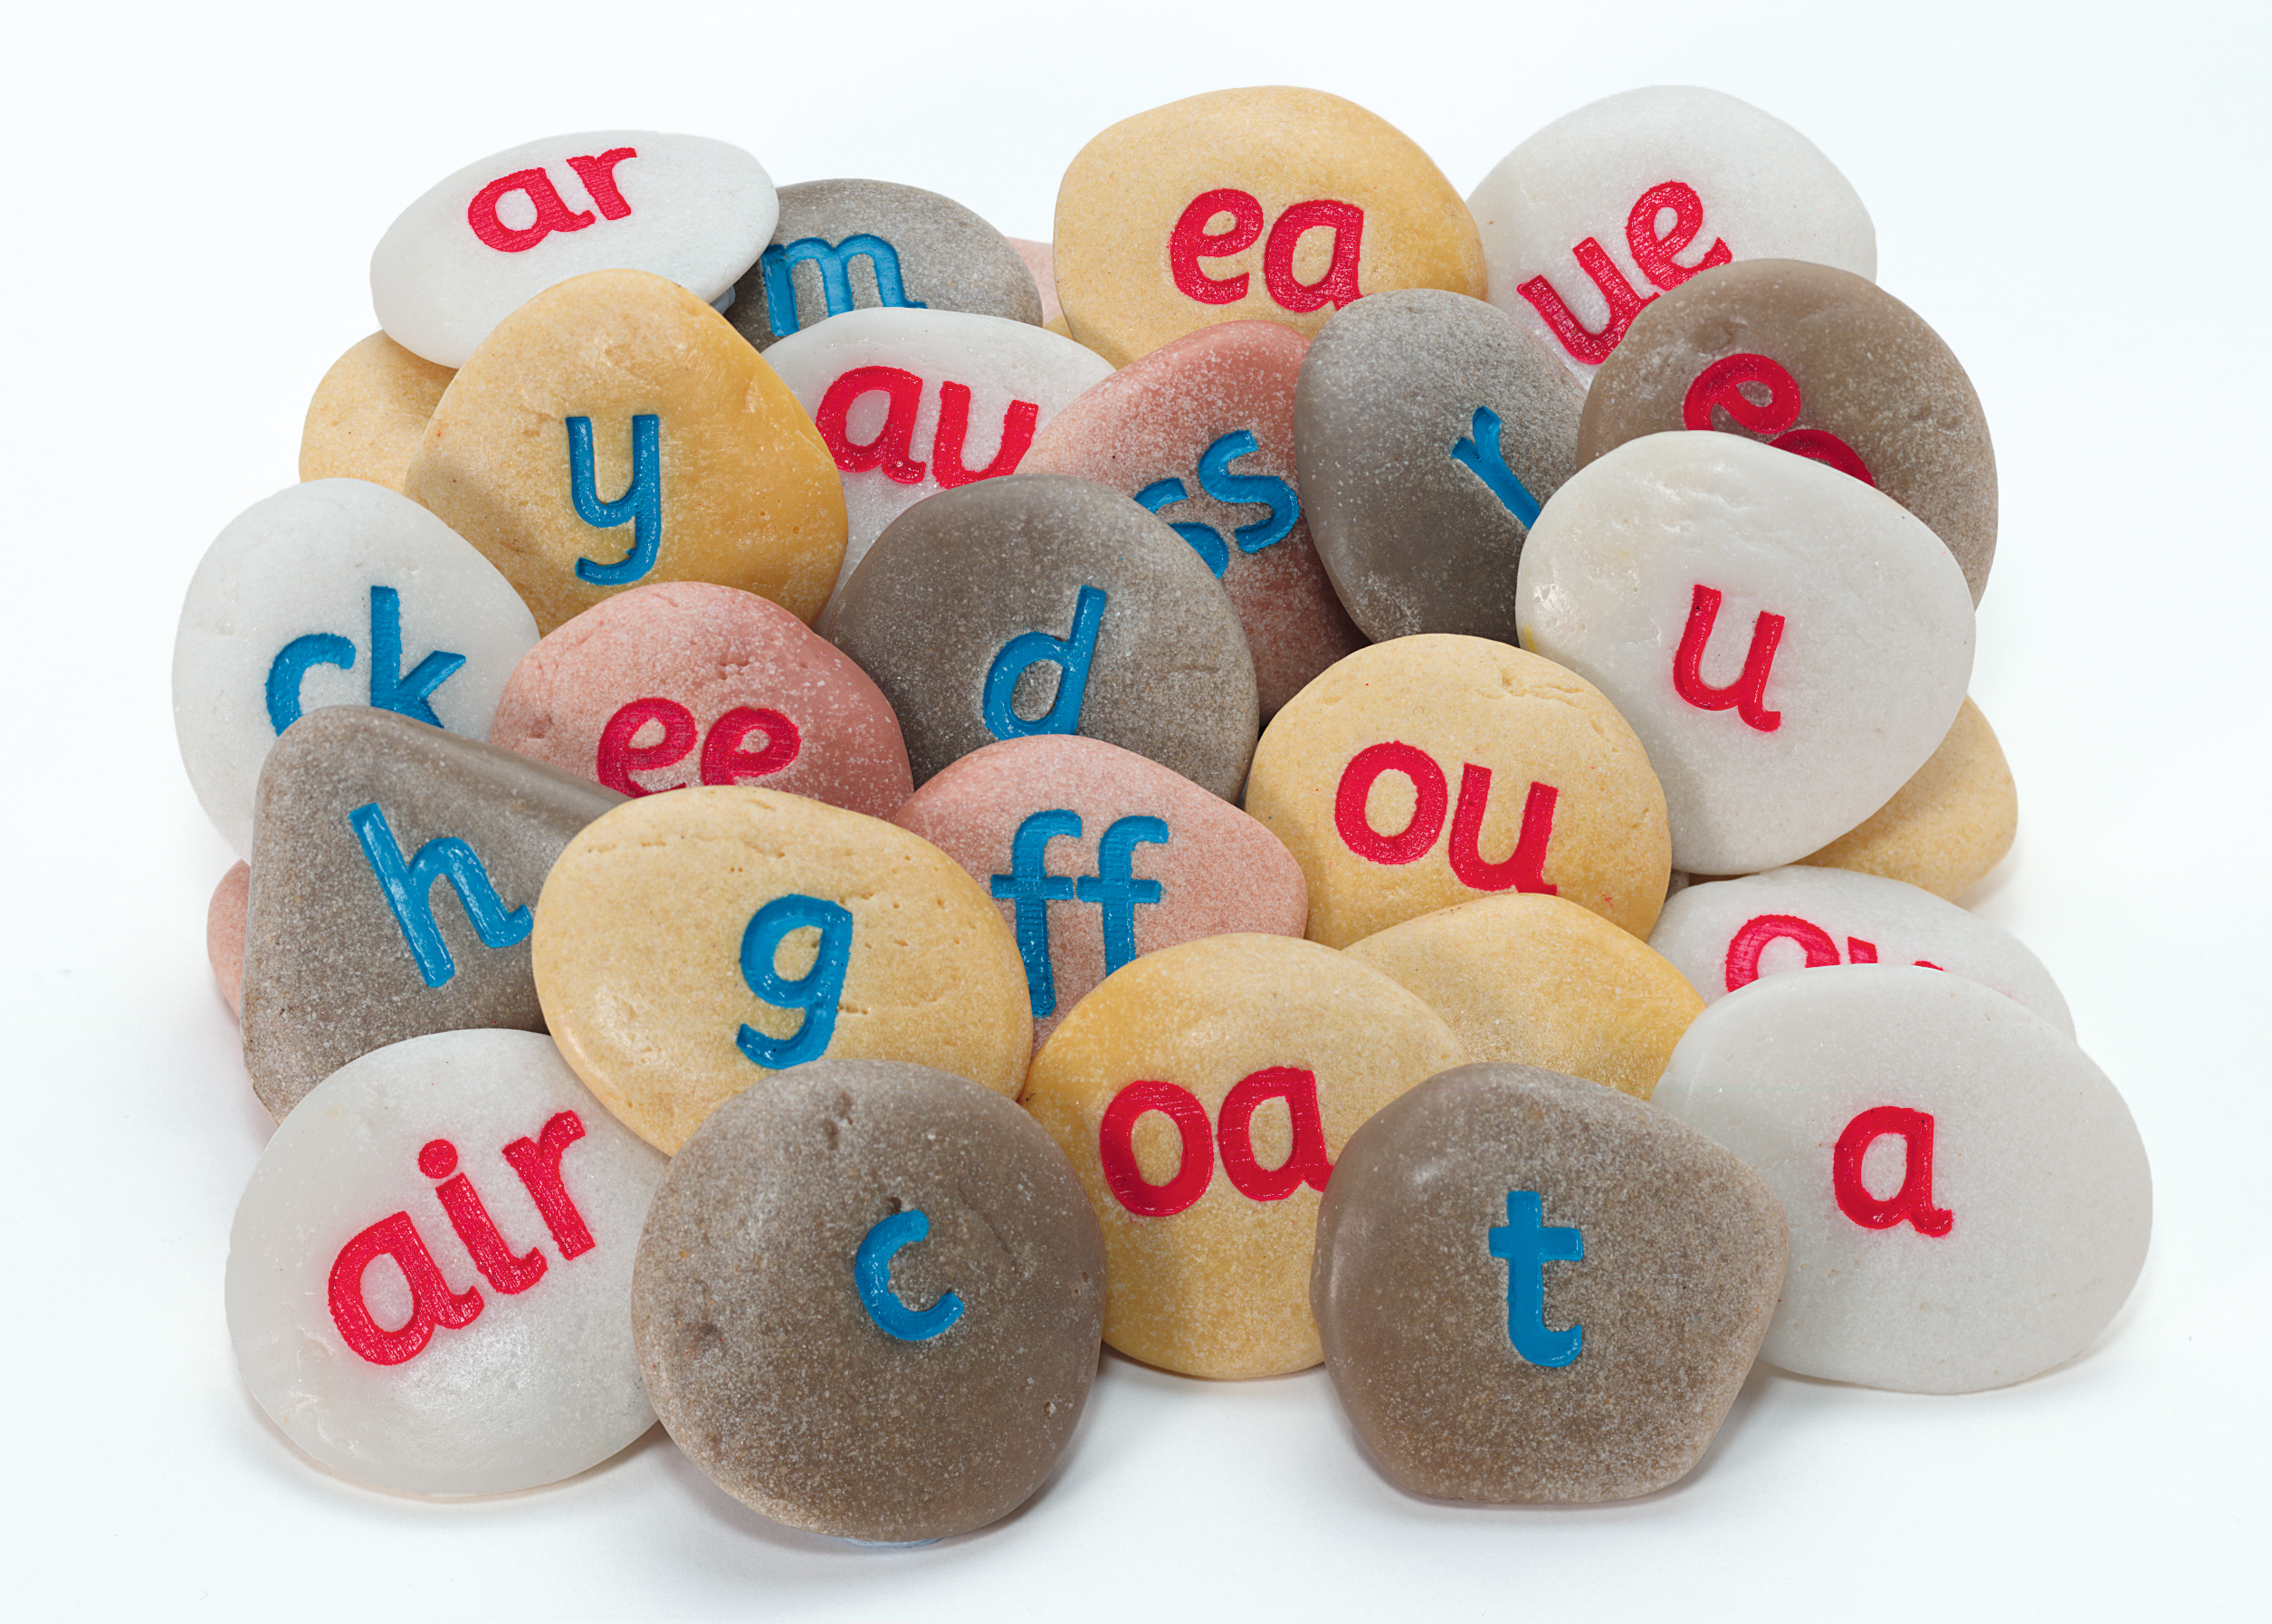 Phonic Pebbles - play and learn with letters and sounds